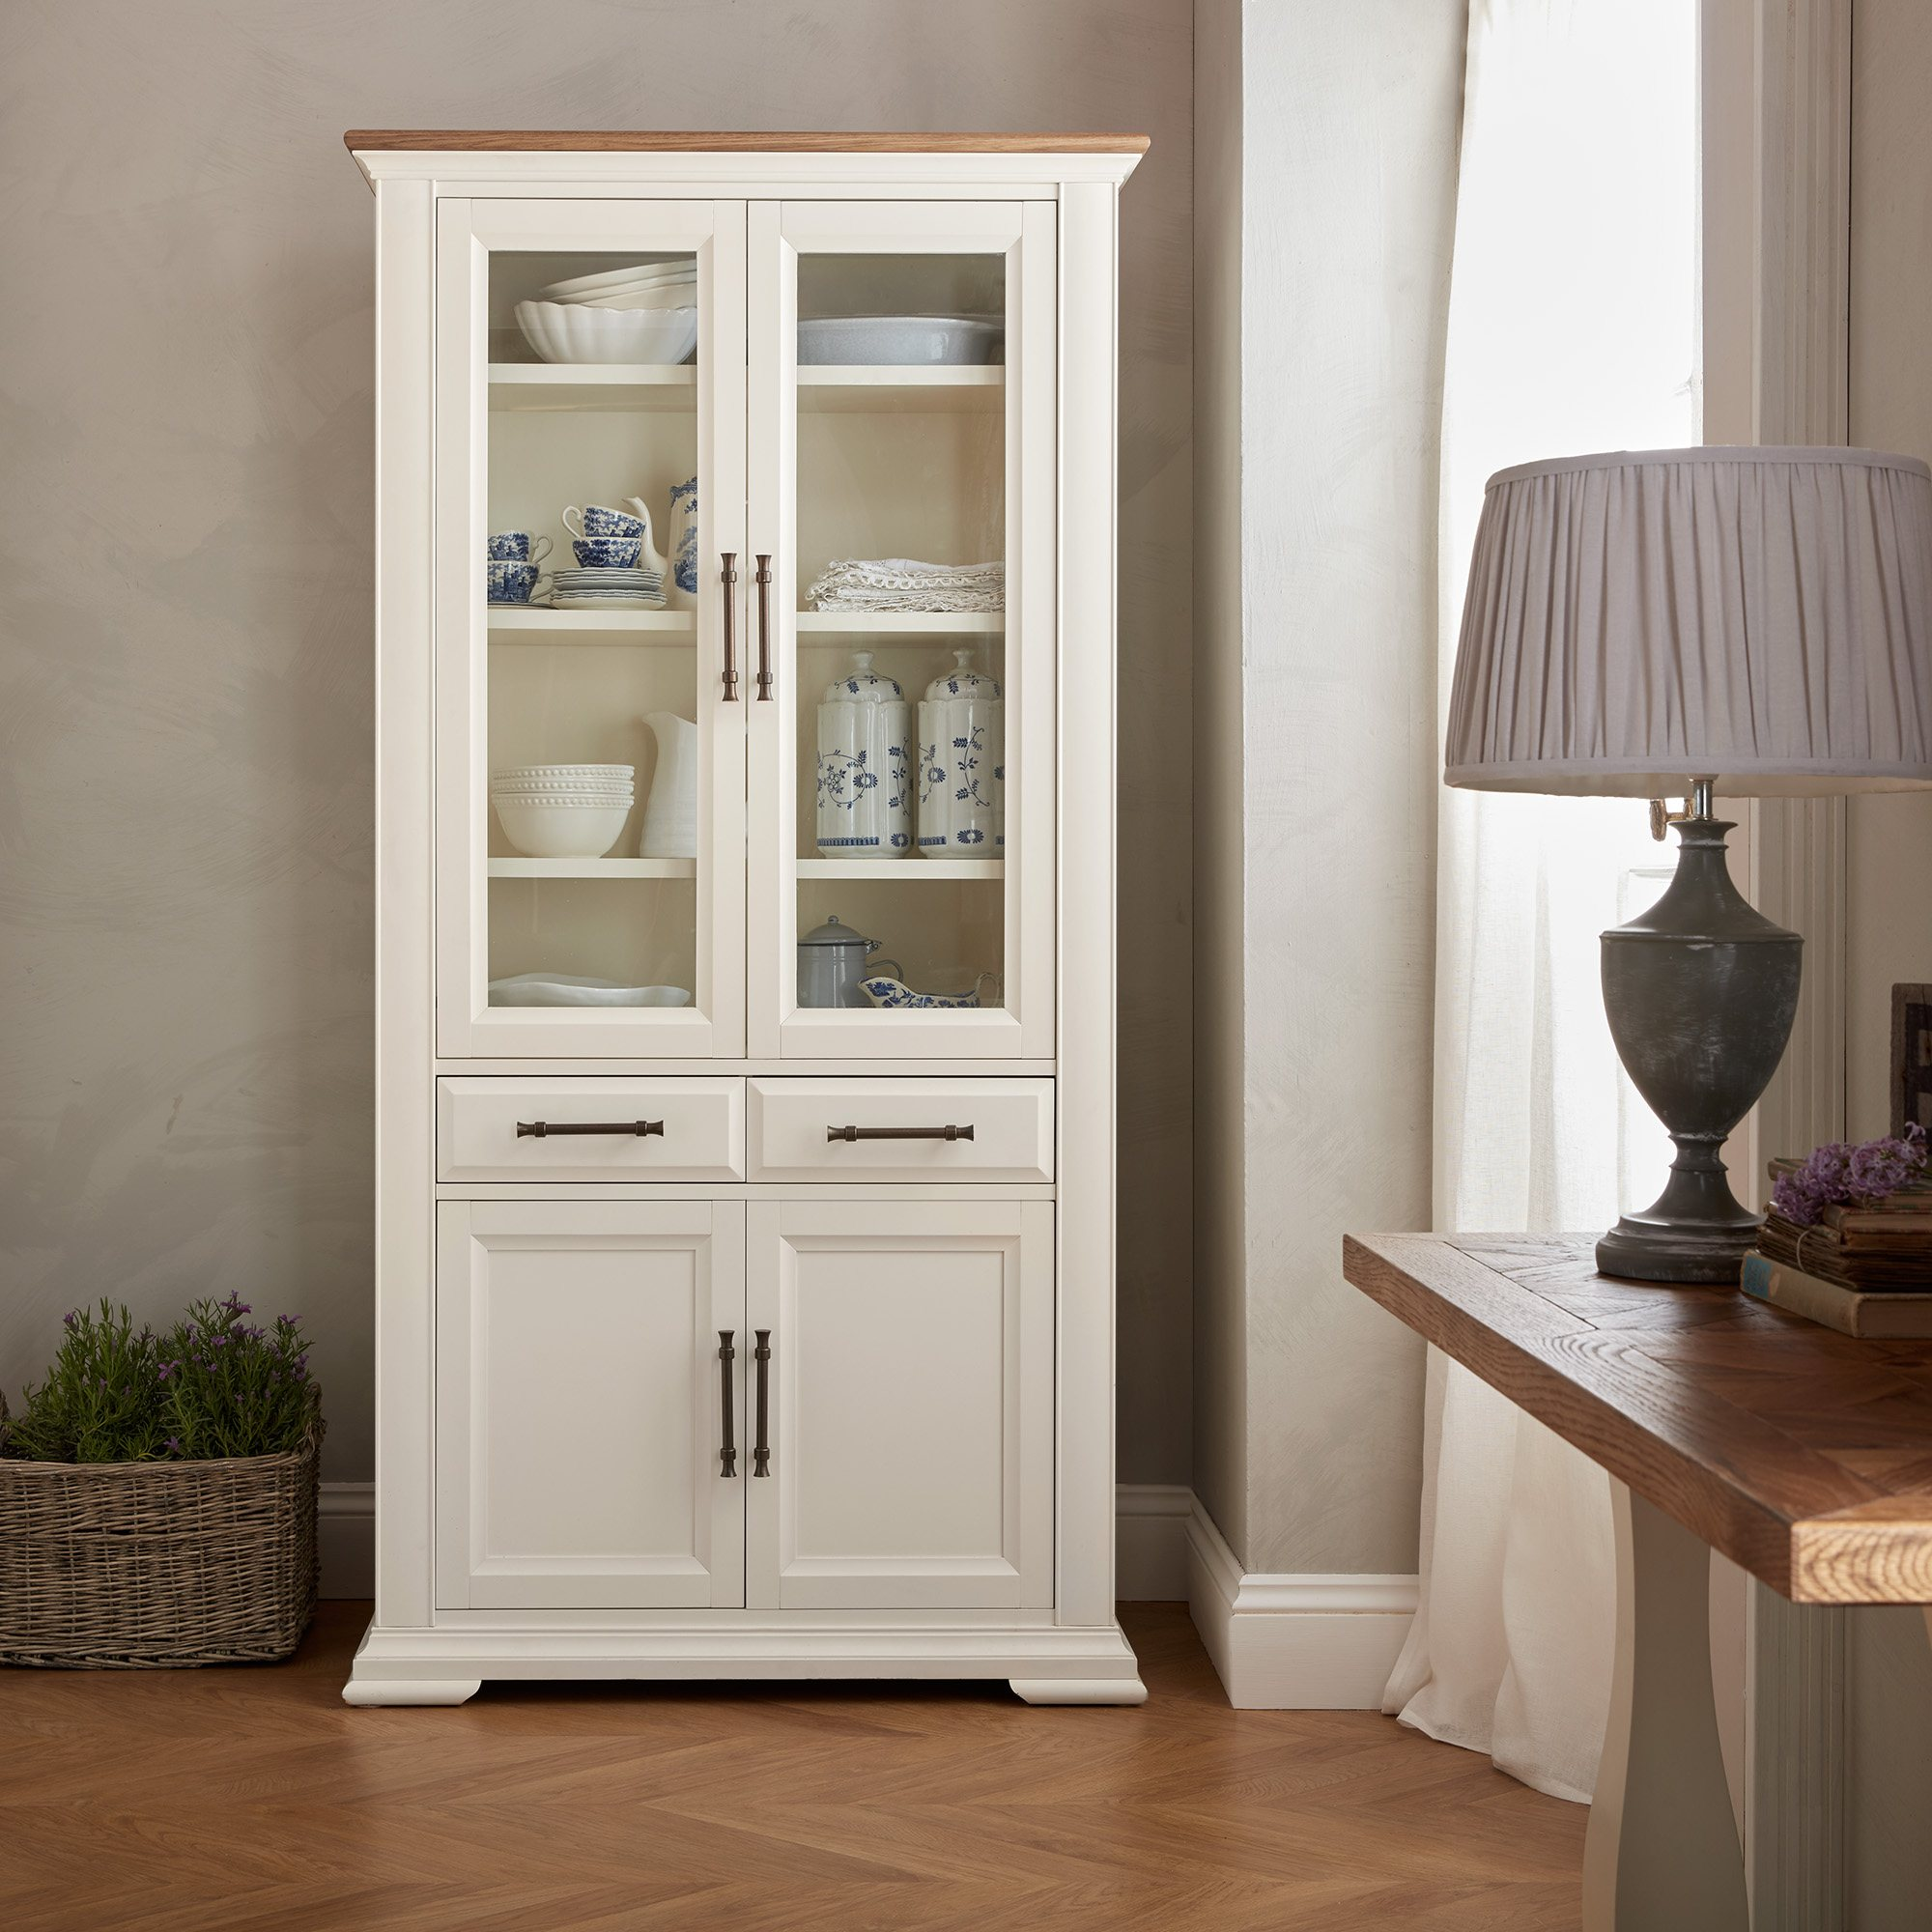 HIGHLAND DISPLAY CABINET - L102cm x D39cm x H200cm